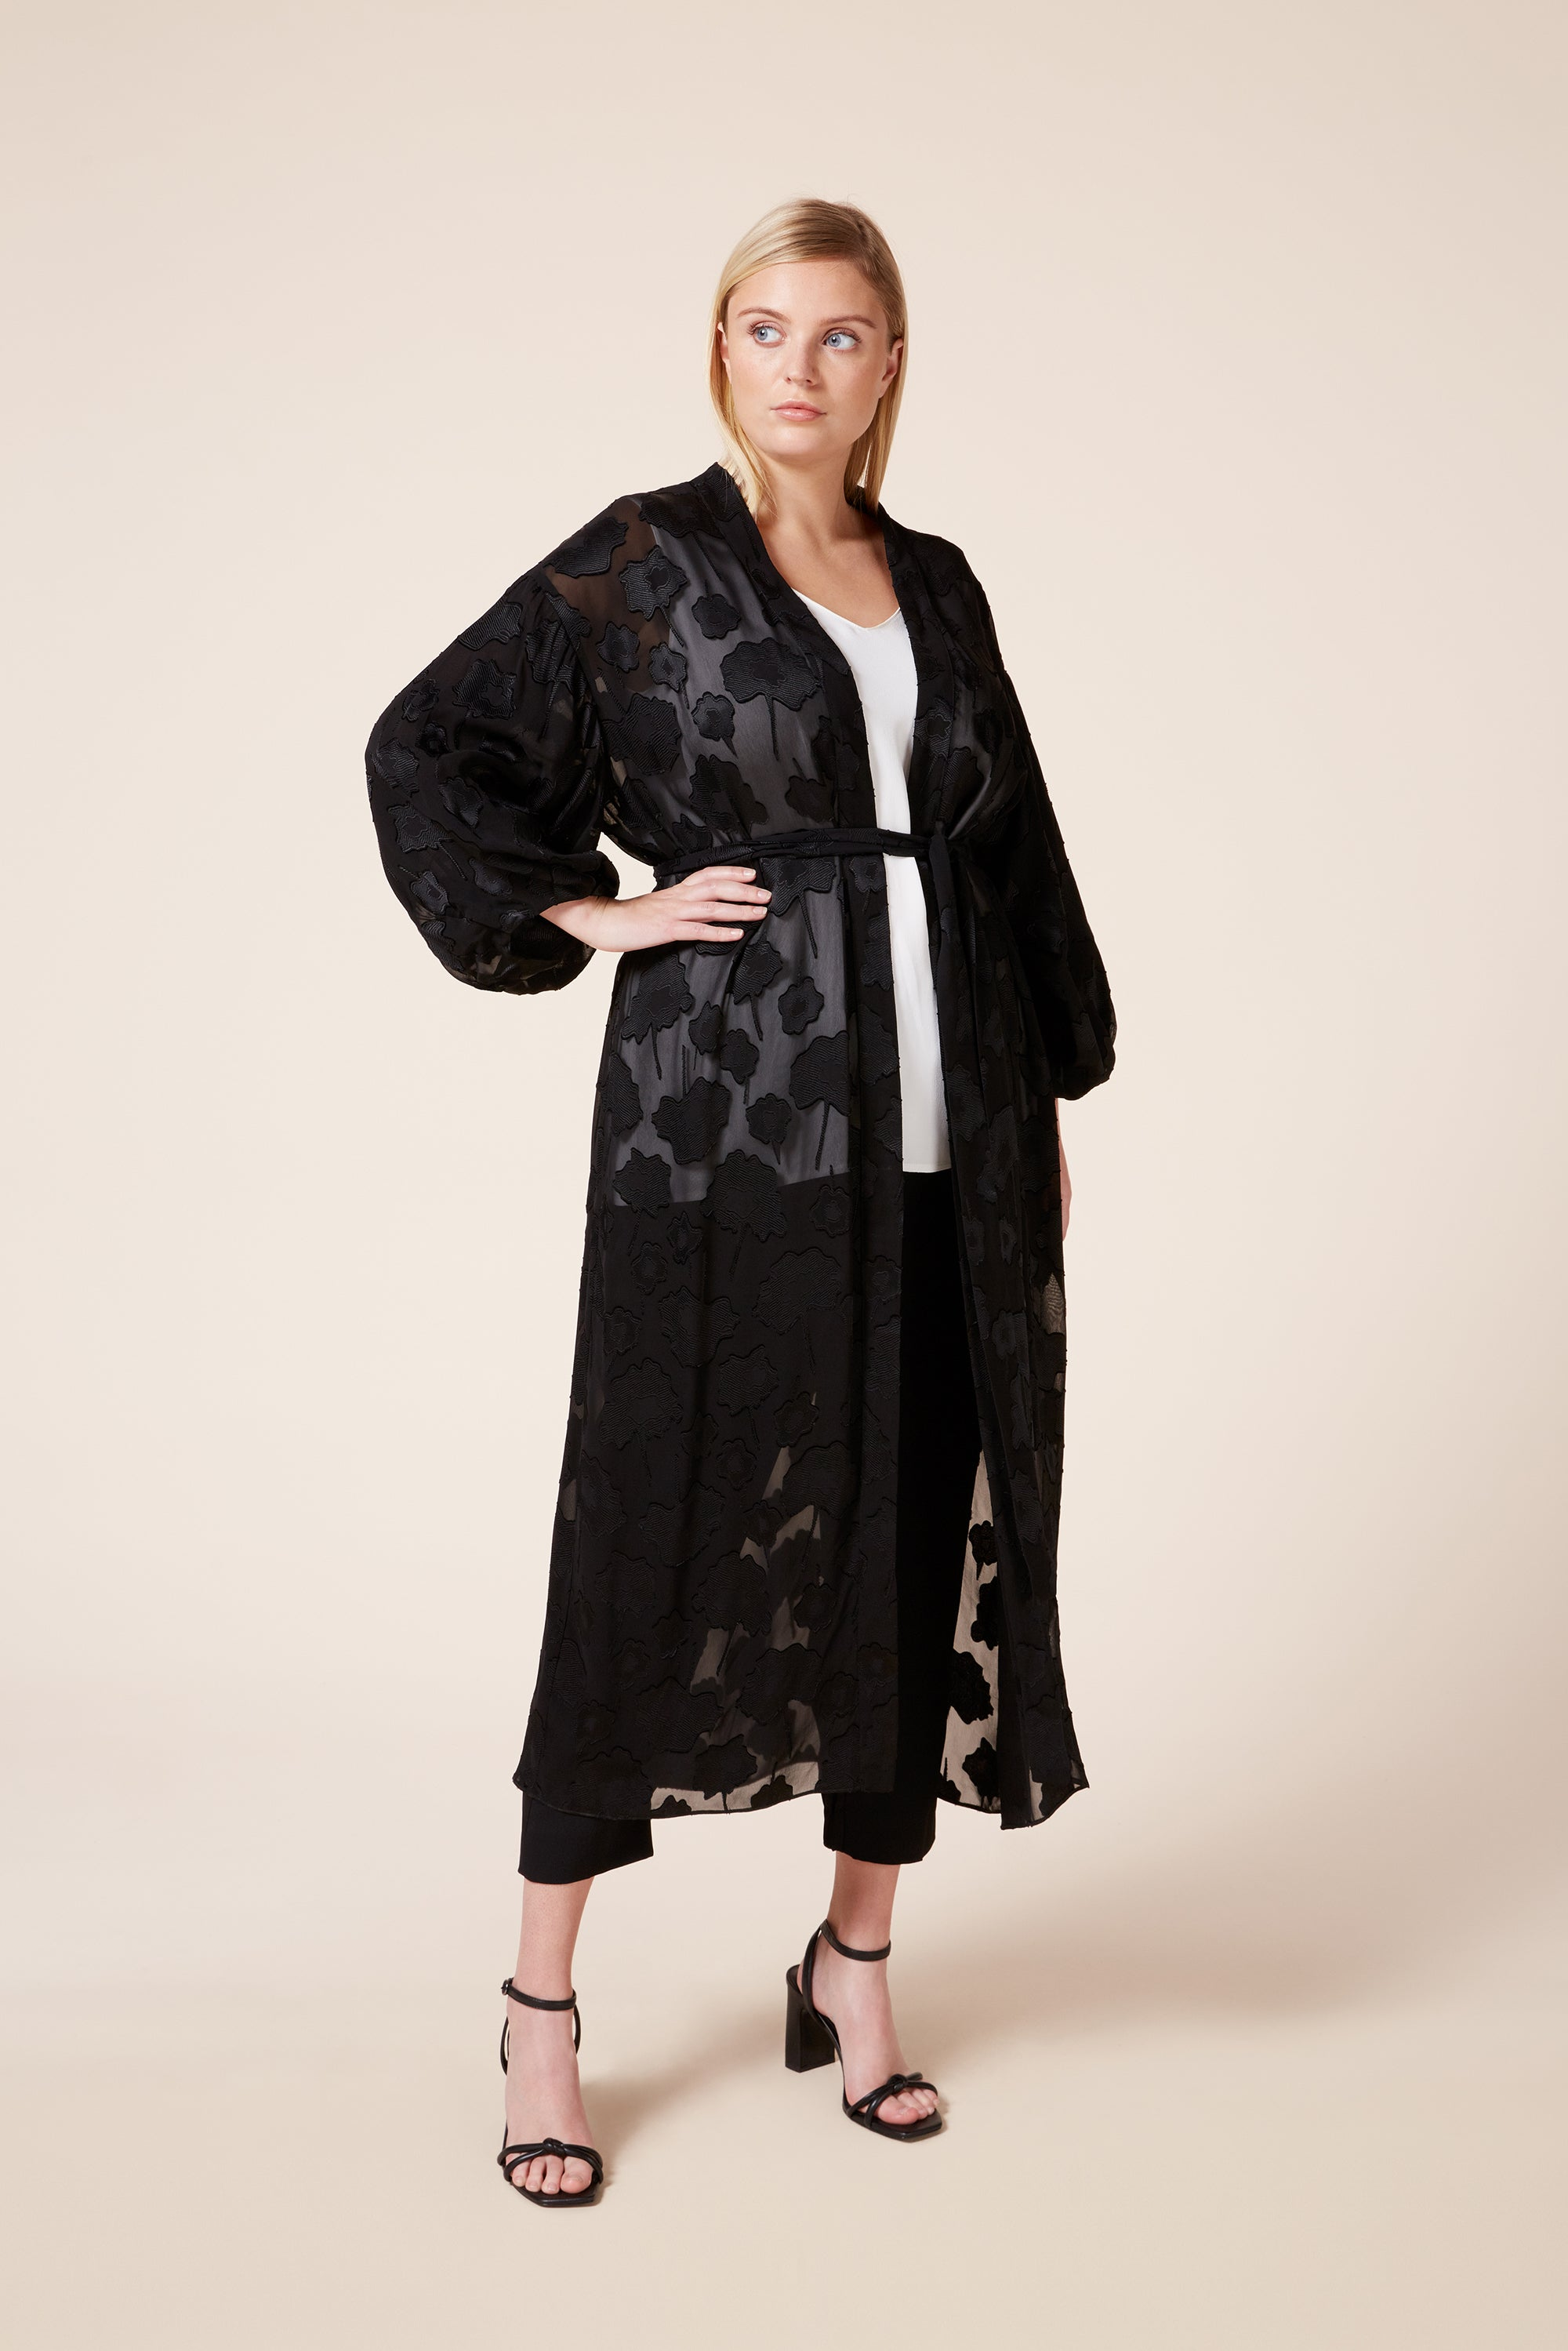 Designer plus size evening diaphanous black silk coat